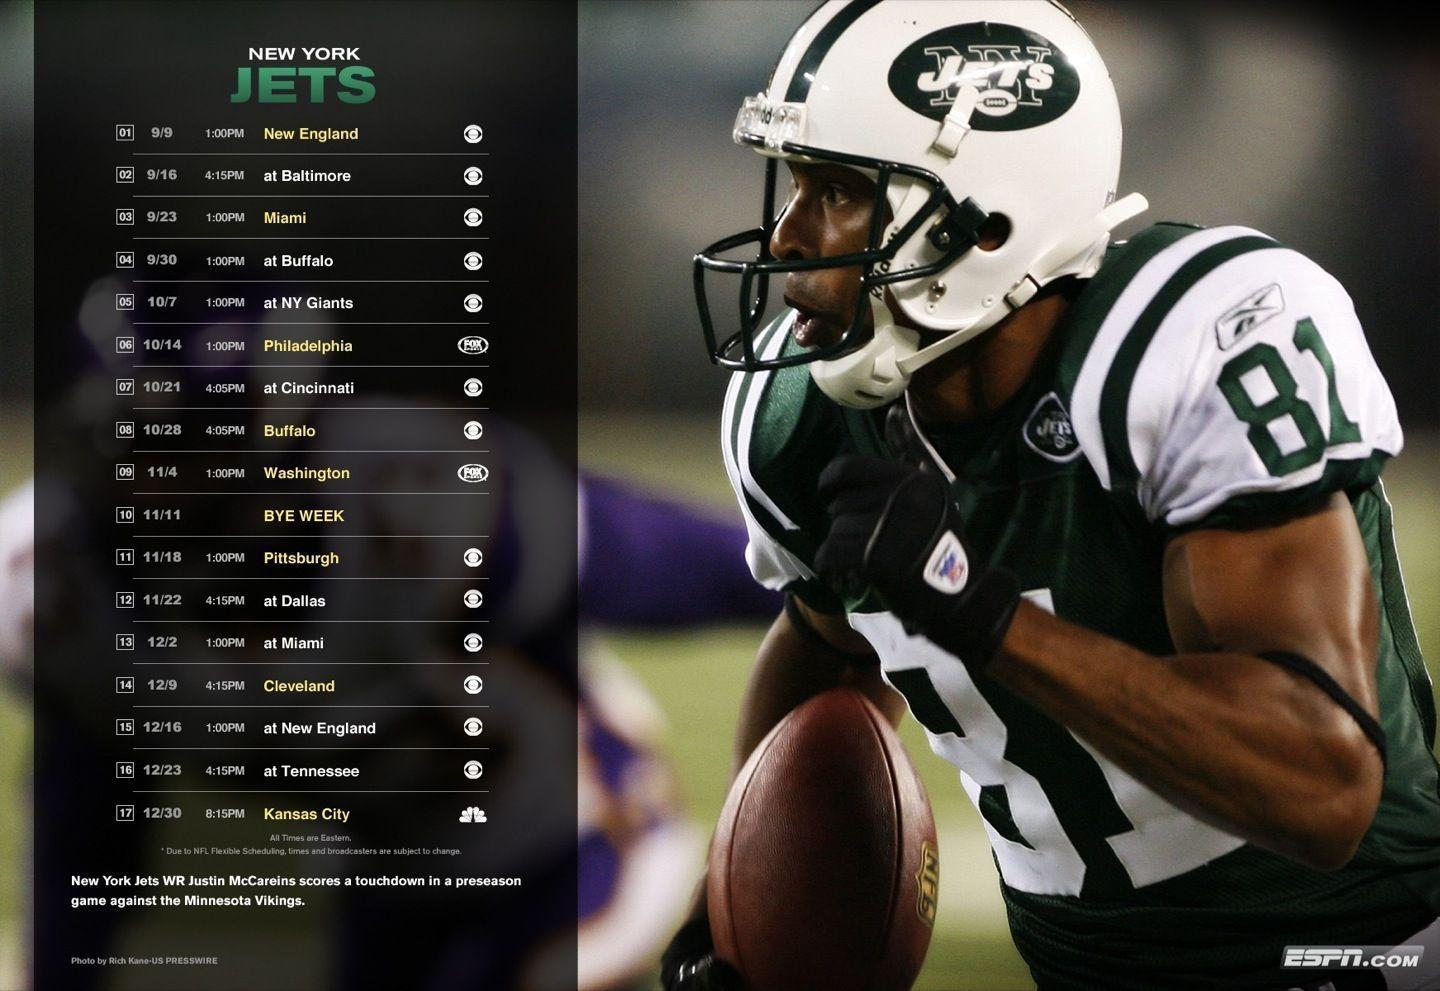 You Guys Asked Us For More New York Jets Wallpapers, So, Here You